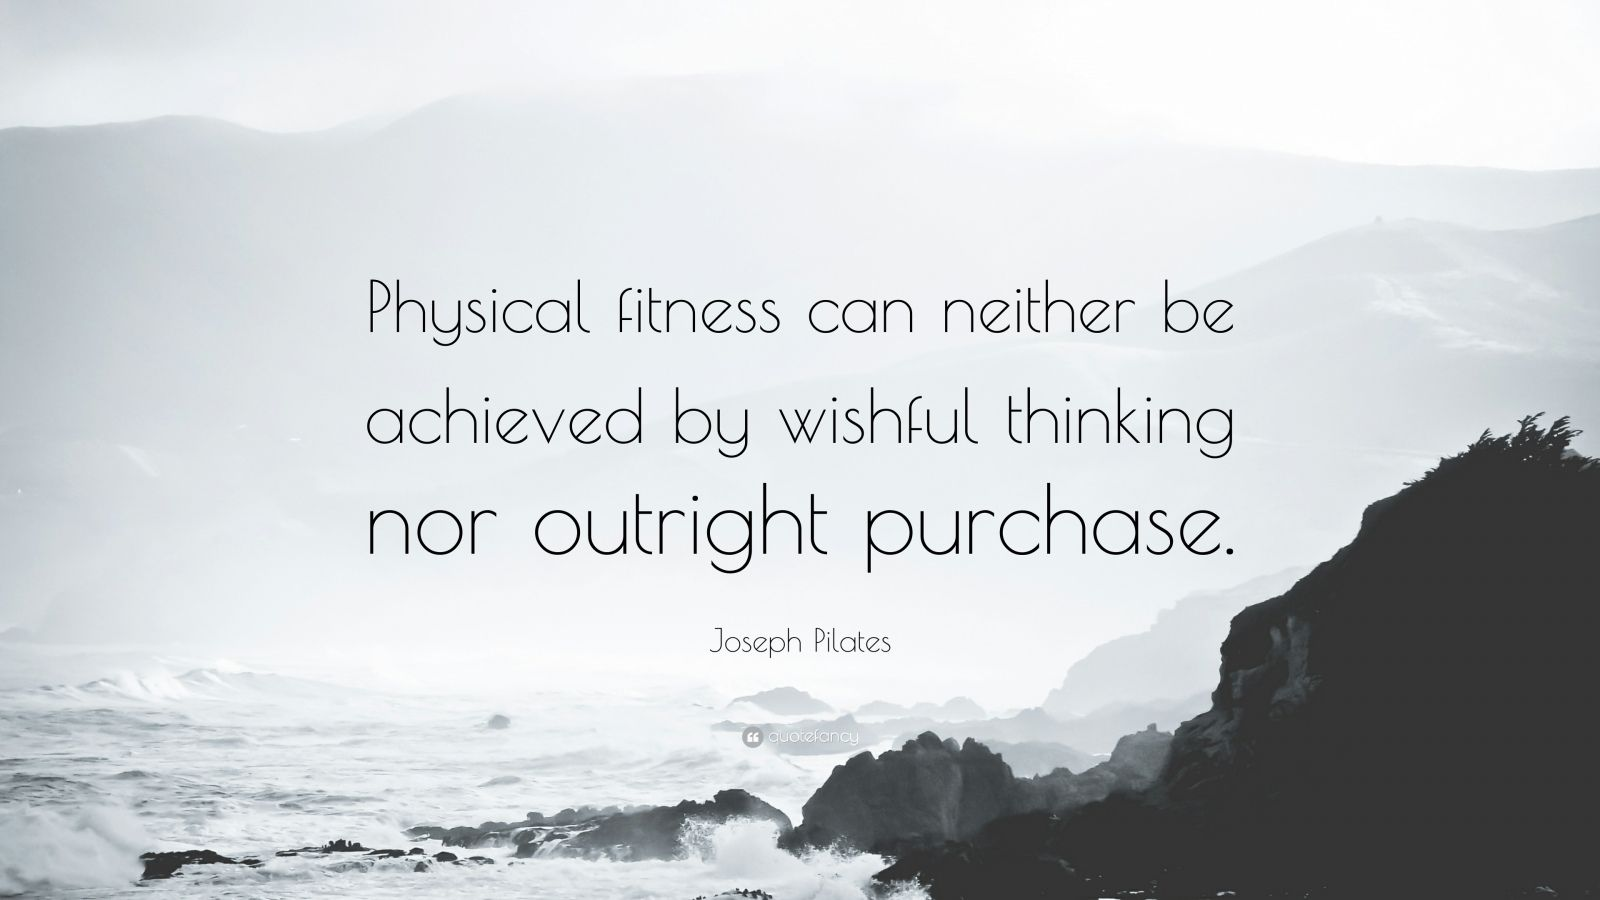 """Joseph Pilates Quote: """"Physical fitness can neither be achieved by wishful thinking nor outright purchase."""""""